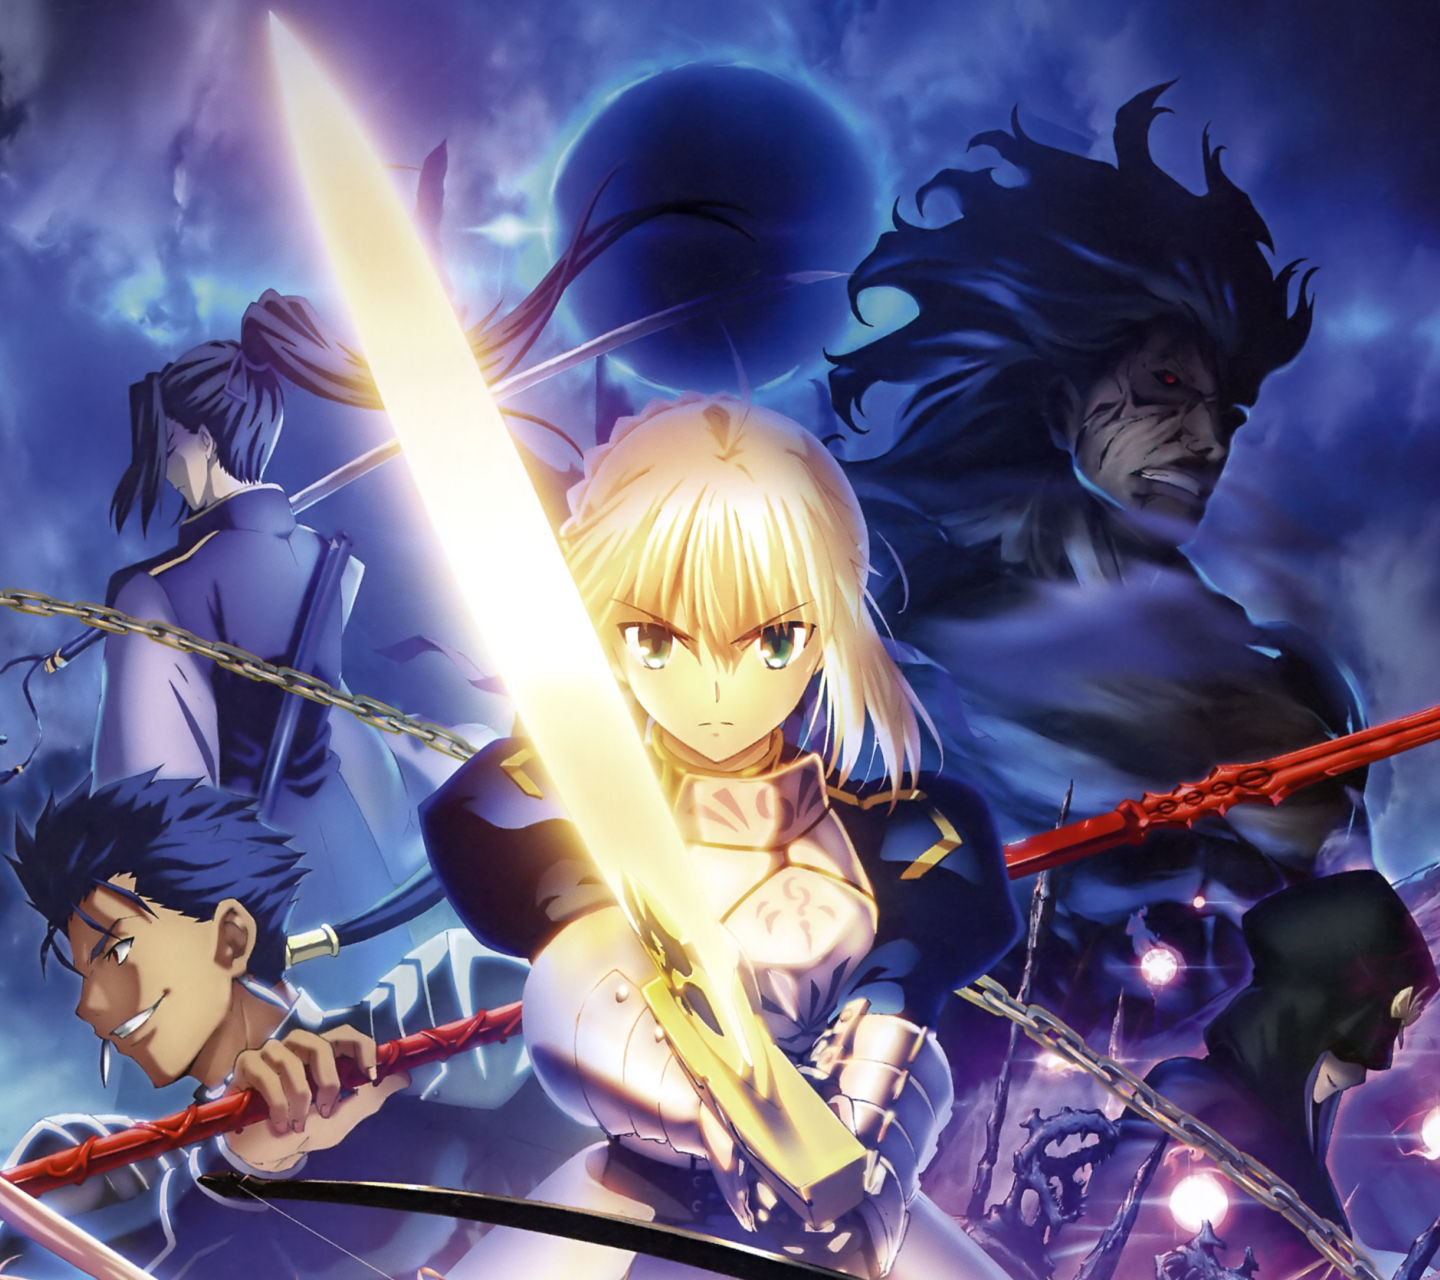 Fate Stay Night Android壁紙 画像 4 1440 1280 アニメ壁紙ネット Pc Android Iphone壁紙 画像